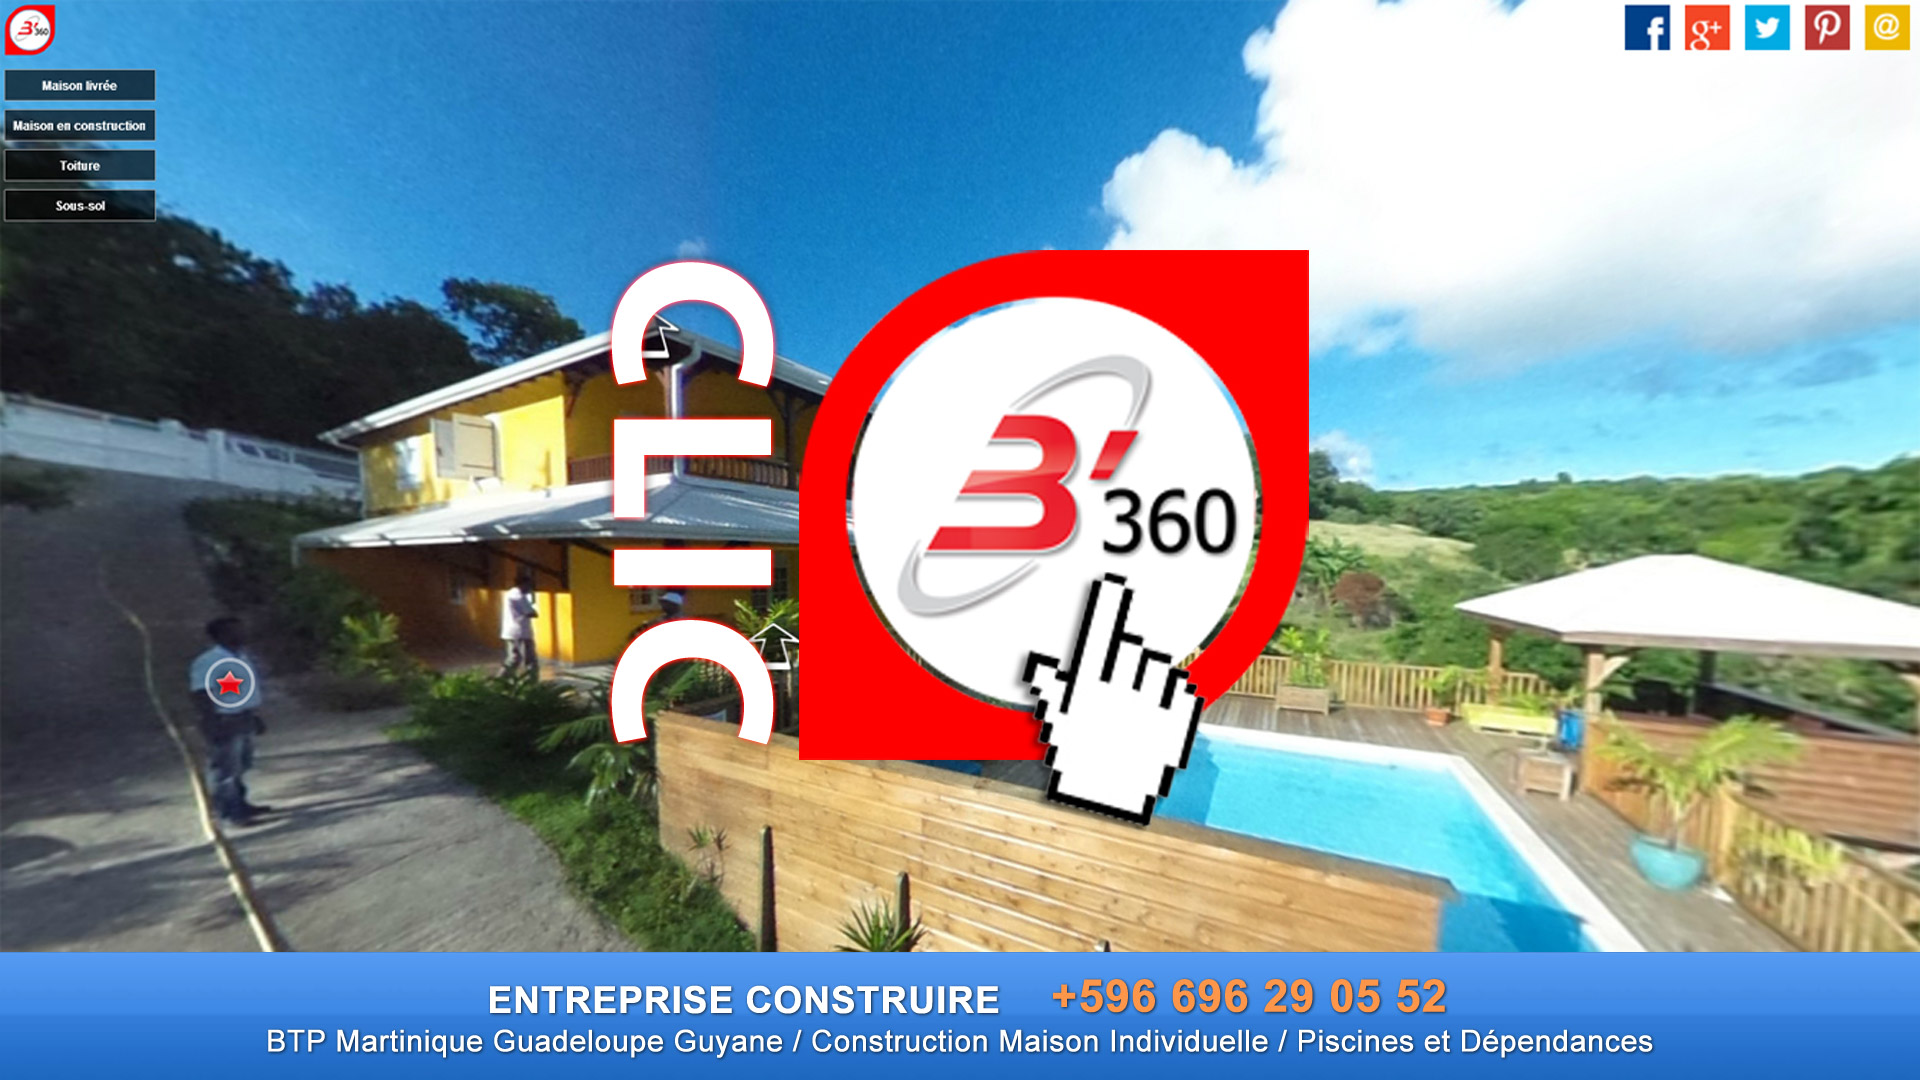 b360-be360-be-360-entreprise-construire-batiment-immobilier-caraibes-guyane-martinique-guadeloupe